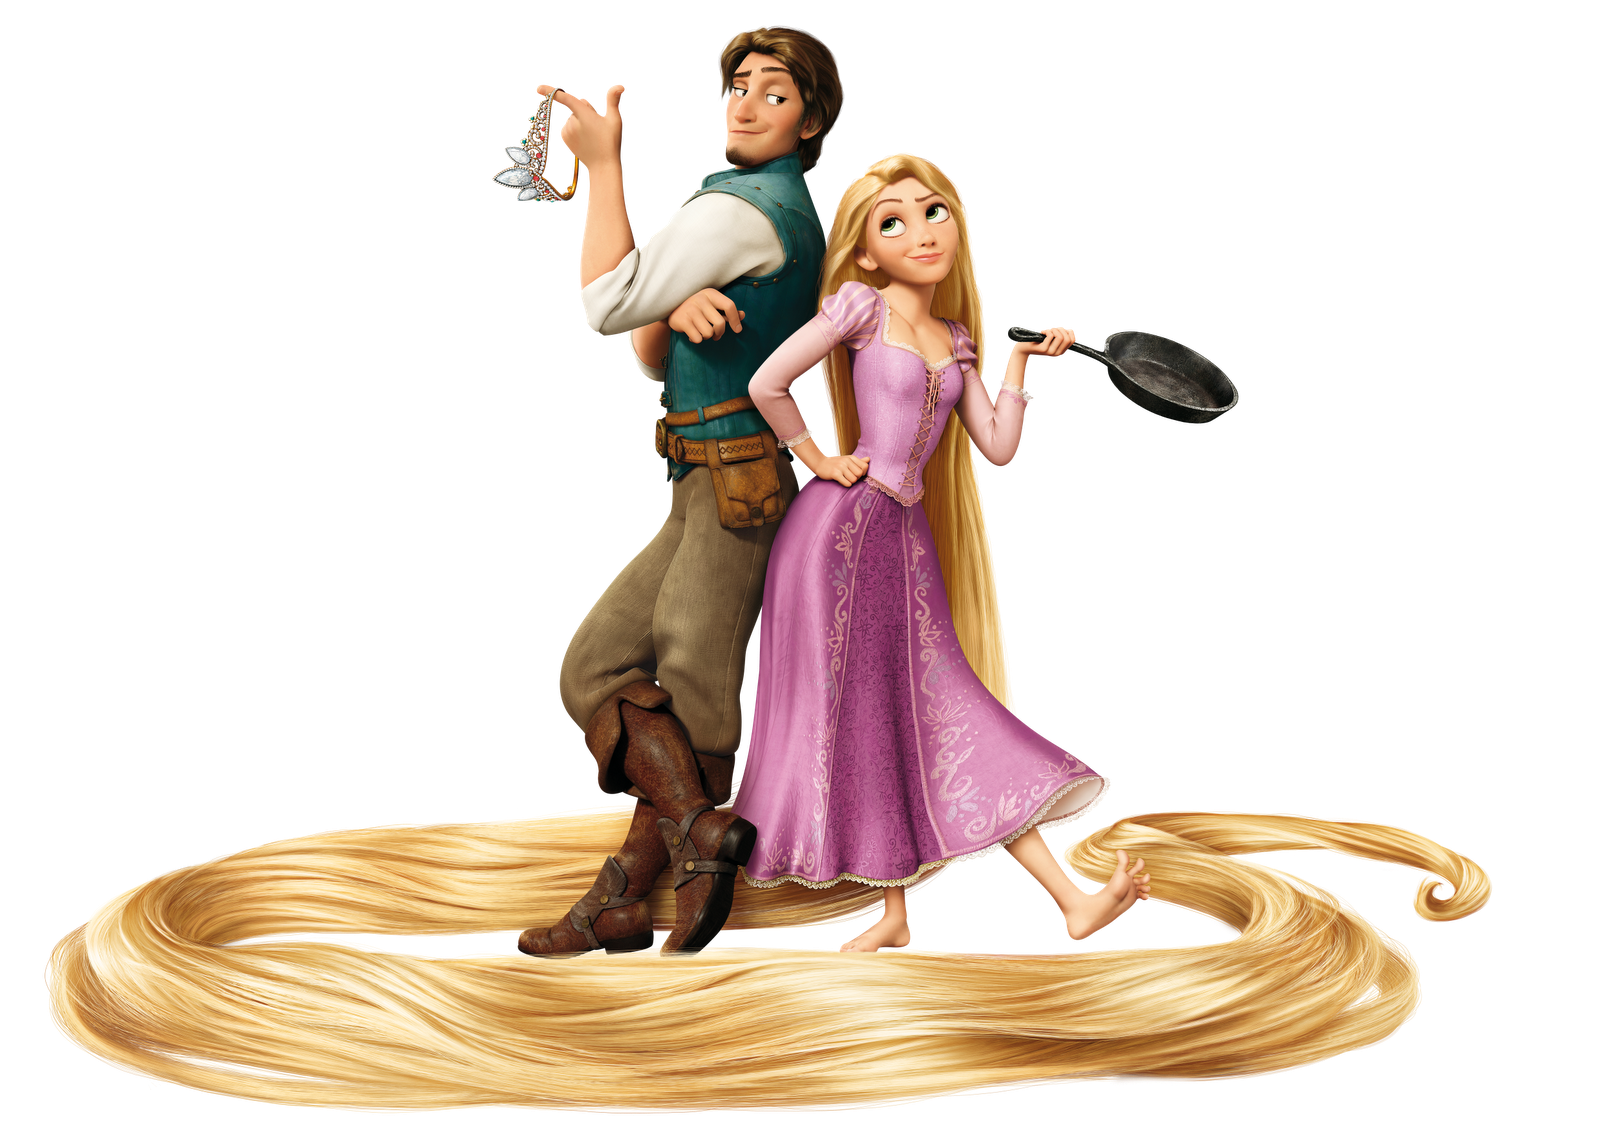 Disney Flynn And Rapunzel Png image #43431